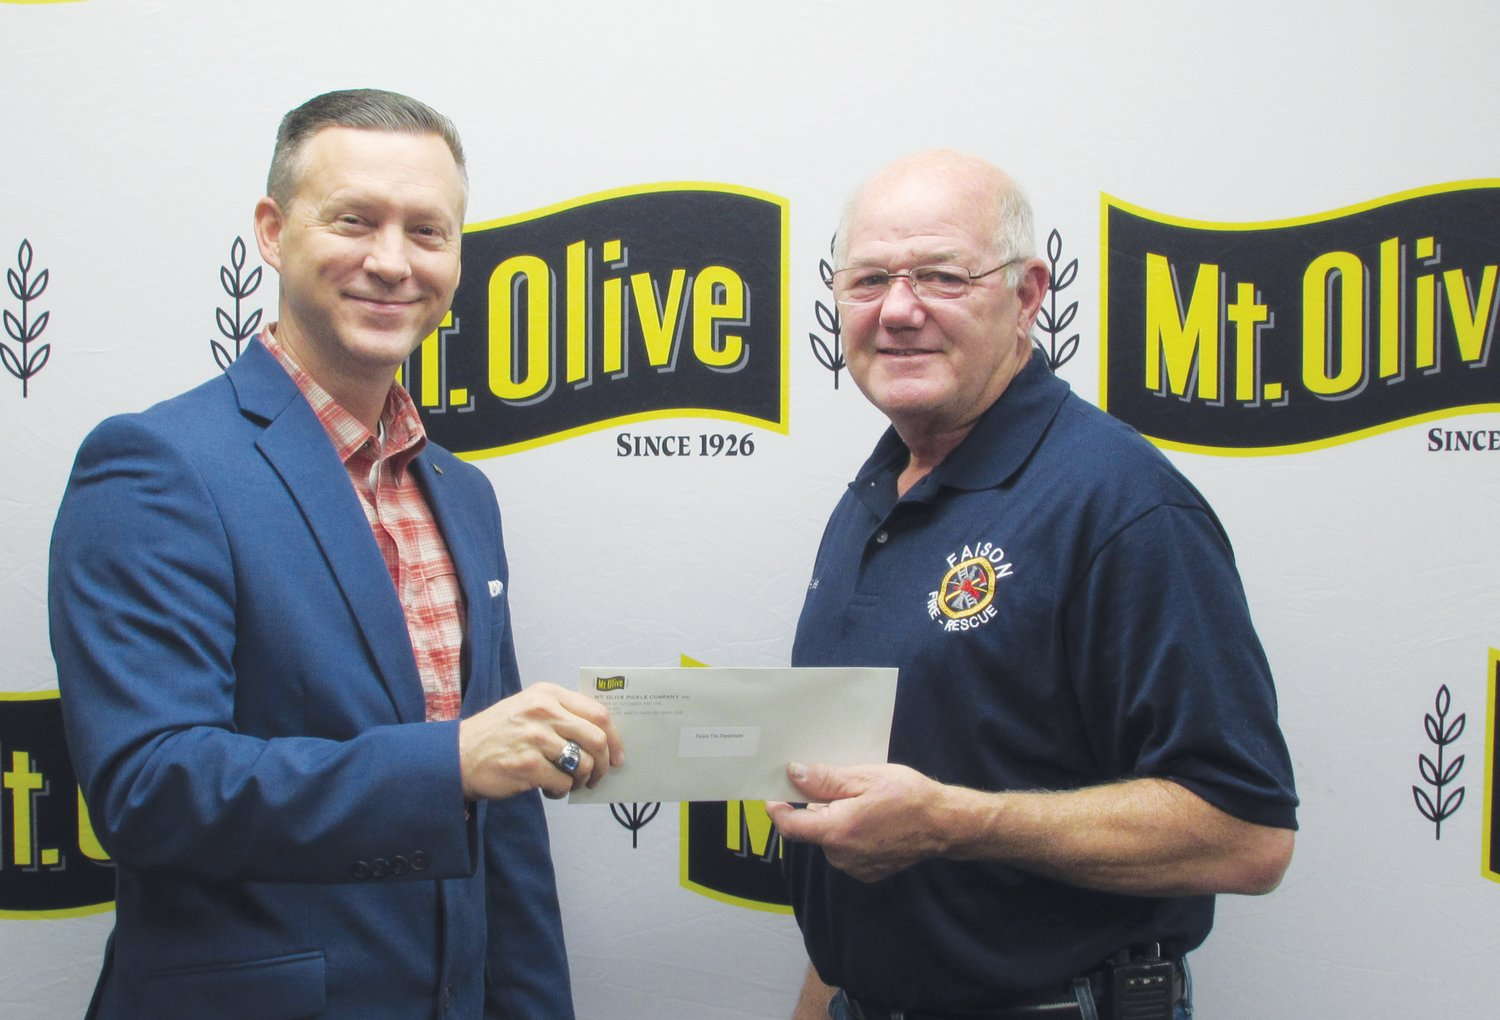 Mt. Olive Pickle Company's Employees Community Fund Chairman Patrick Muston, left, presents a check for $1,775 to Robert Kennedy, Assistant Chief of Faison Fire and Rescue.